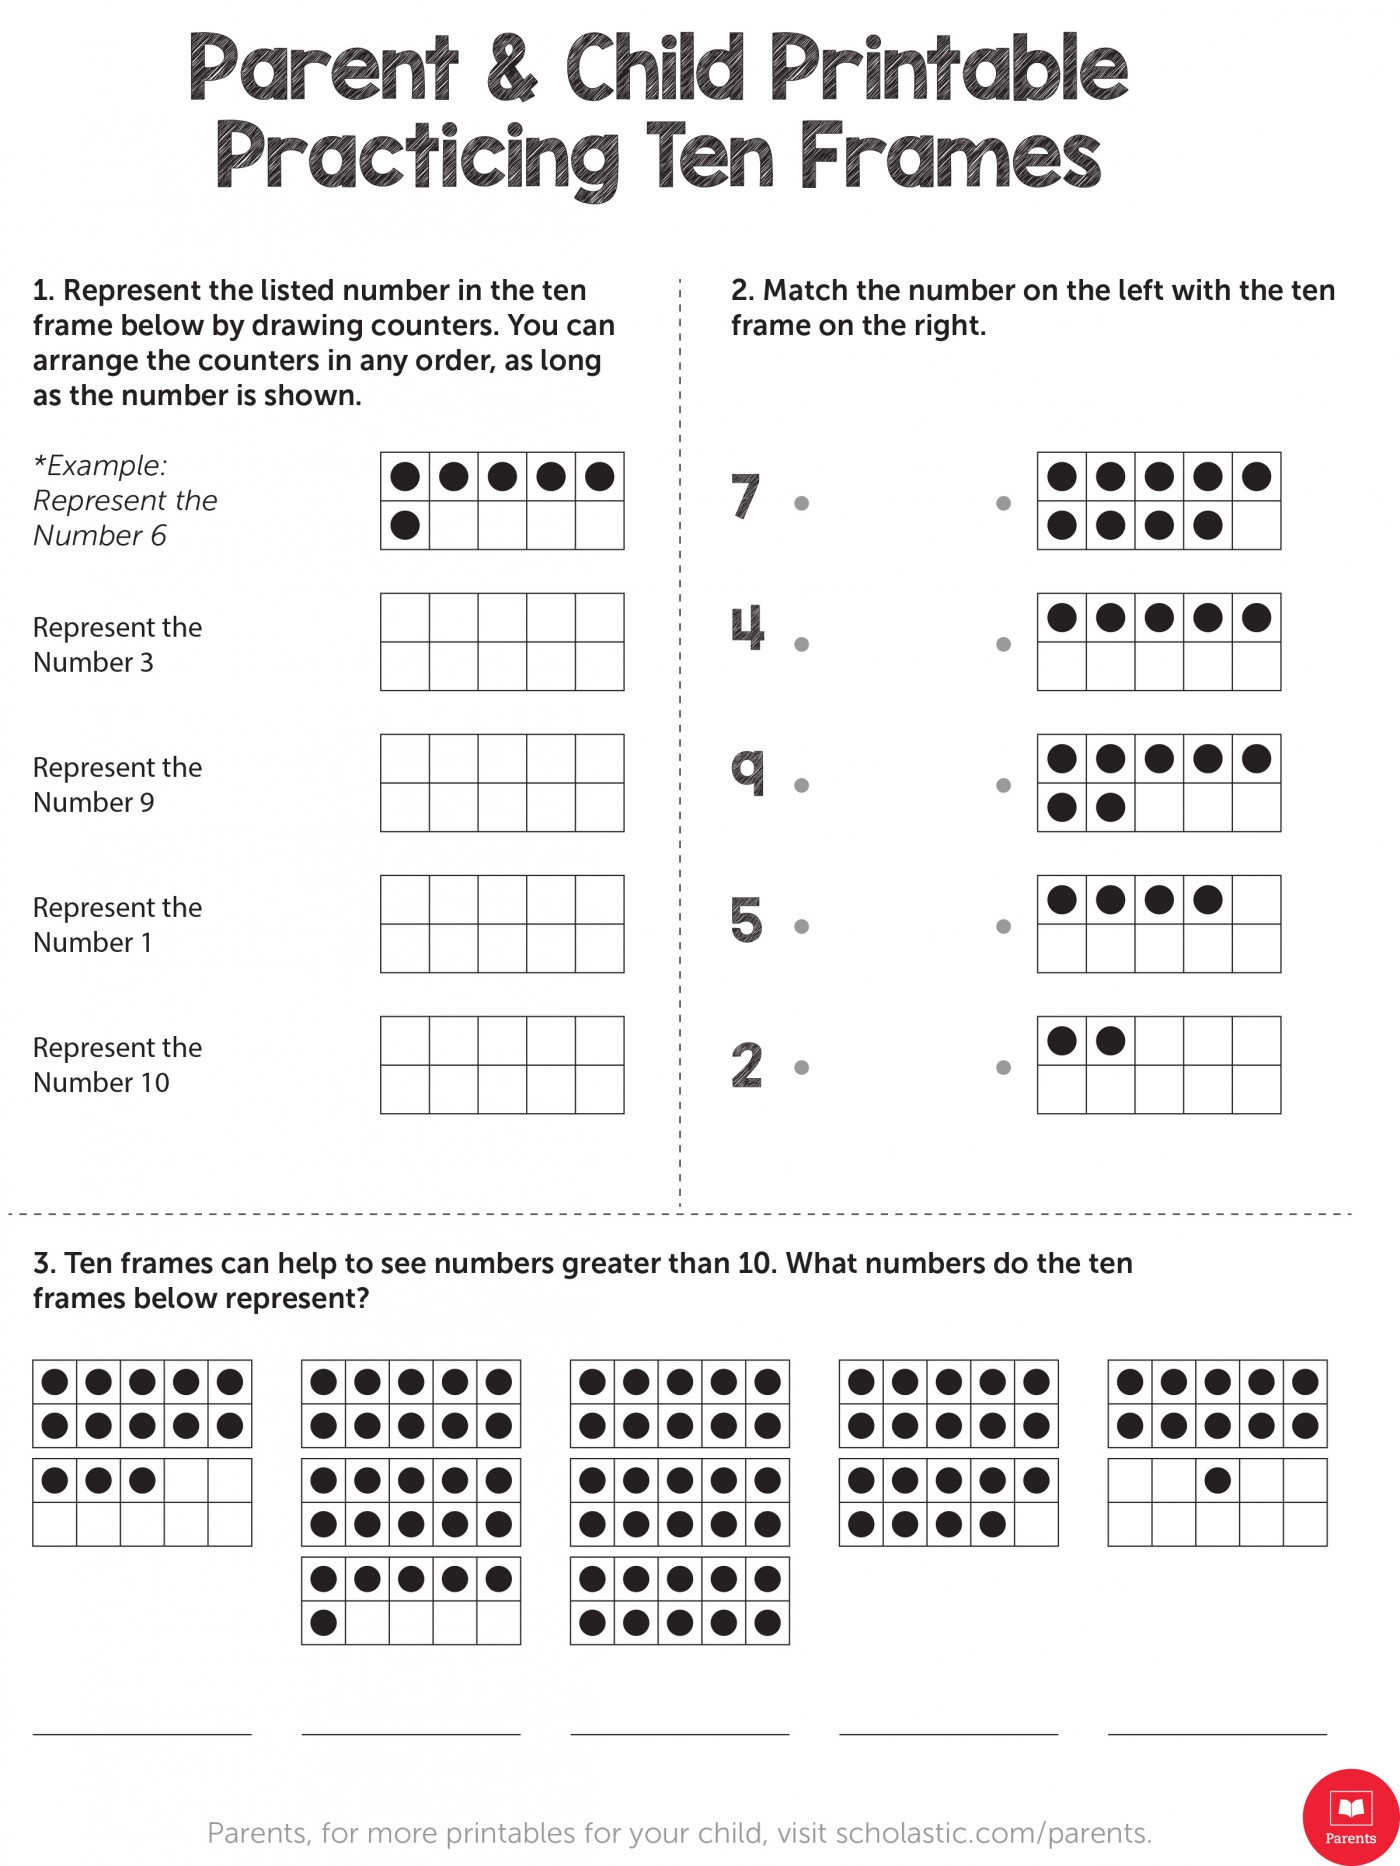 hight resolution of 4 Free Math Worksheets Second Grade 2 Addition Adding 3 Digit and 1 Digit  Numbers - apocalomegaproductions.com